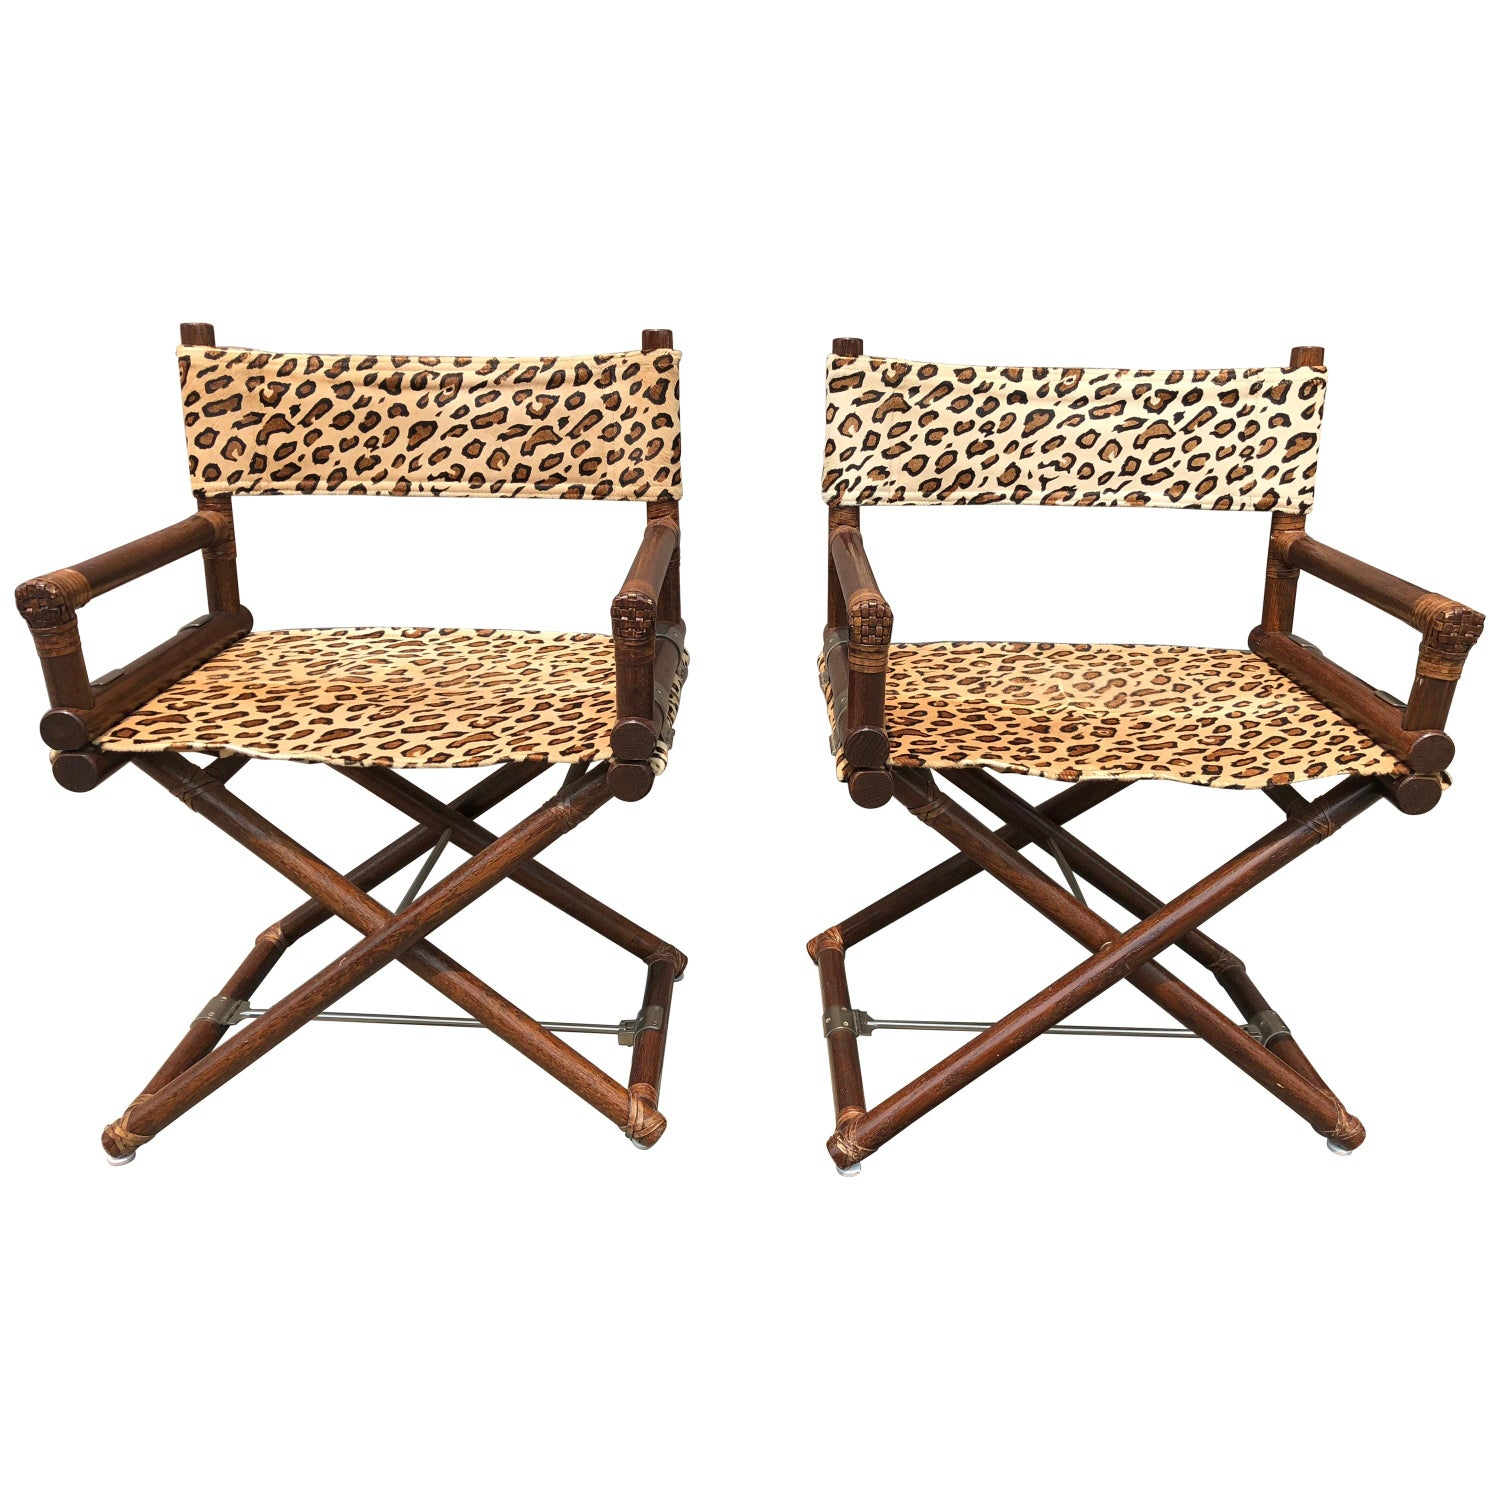 Awesome Mcguire Animal Print Campaign Chairs A Pair For Sale At 1Stdibs Beatyapartments Chair Design Images Beatyapartmentscom